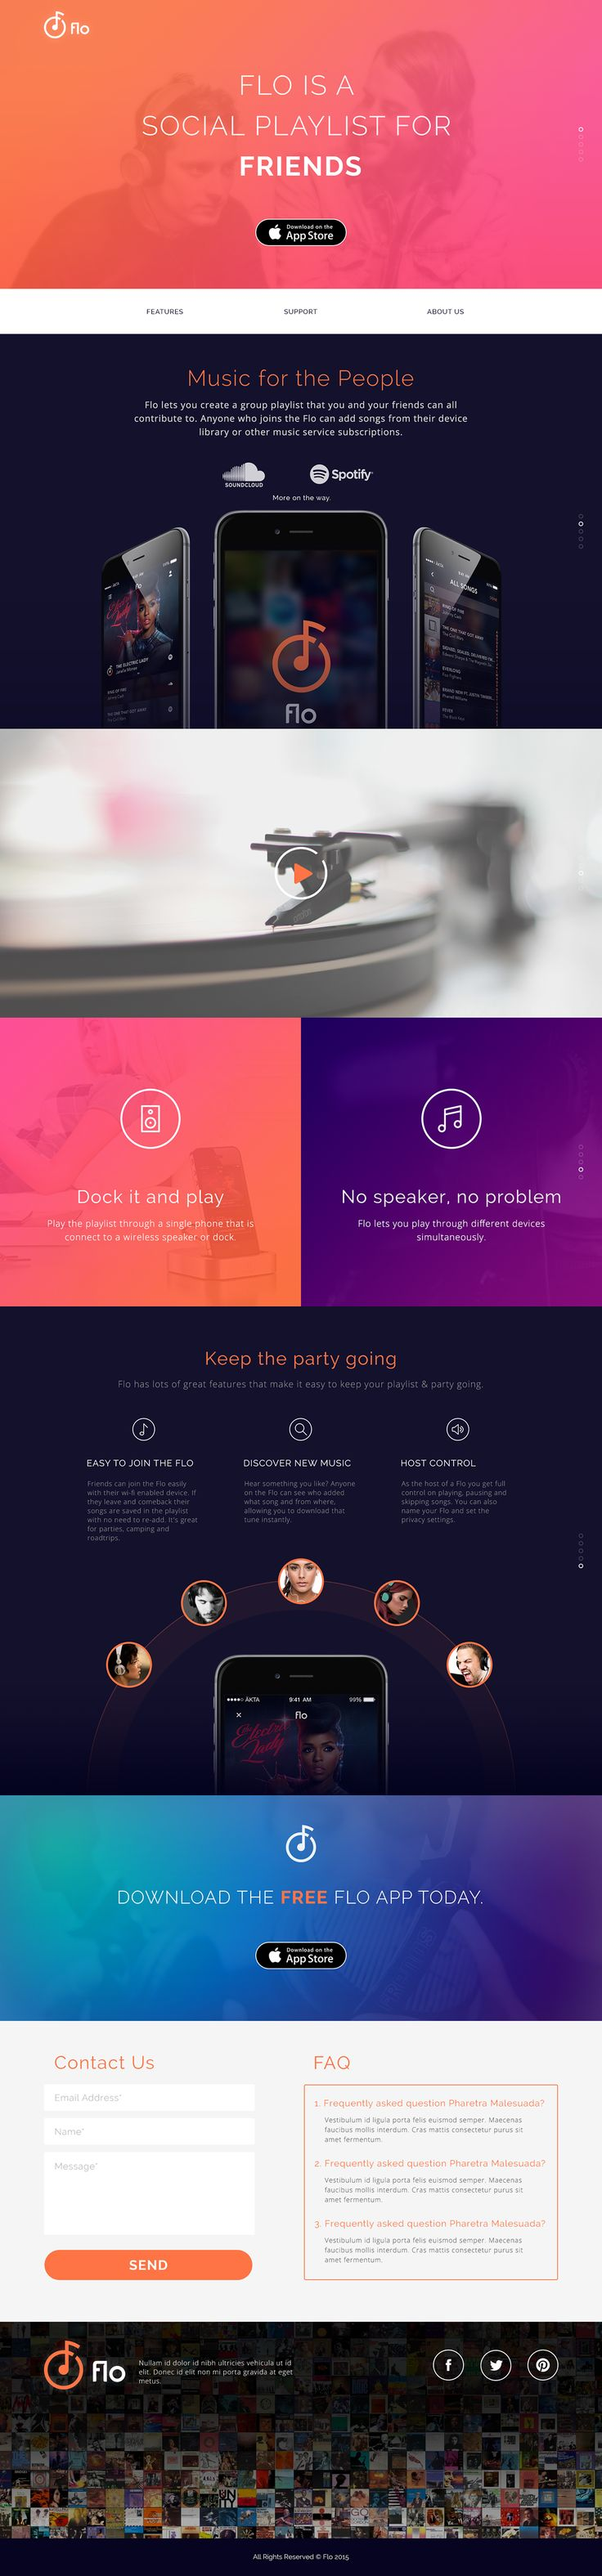 Flo Music App marketing site design on Behance